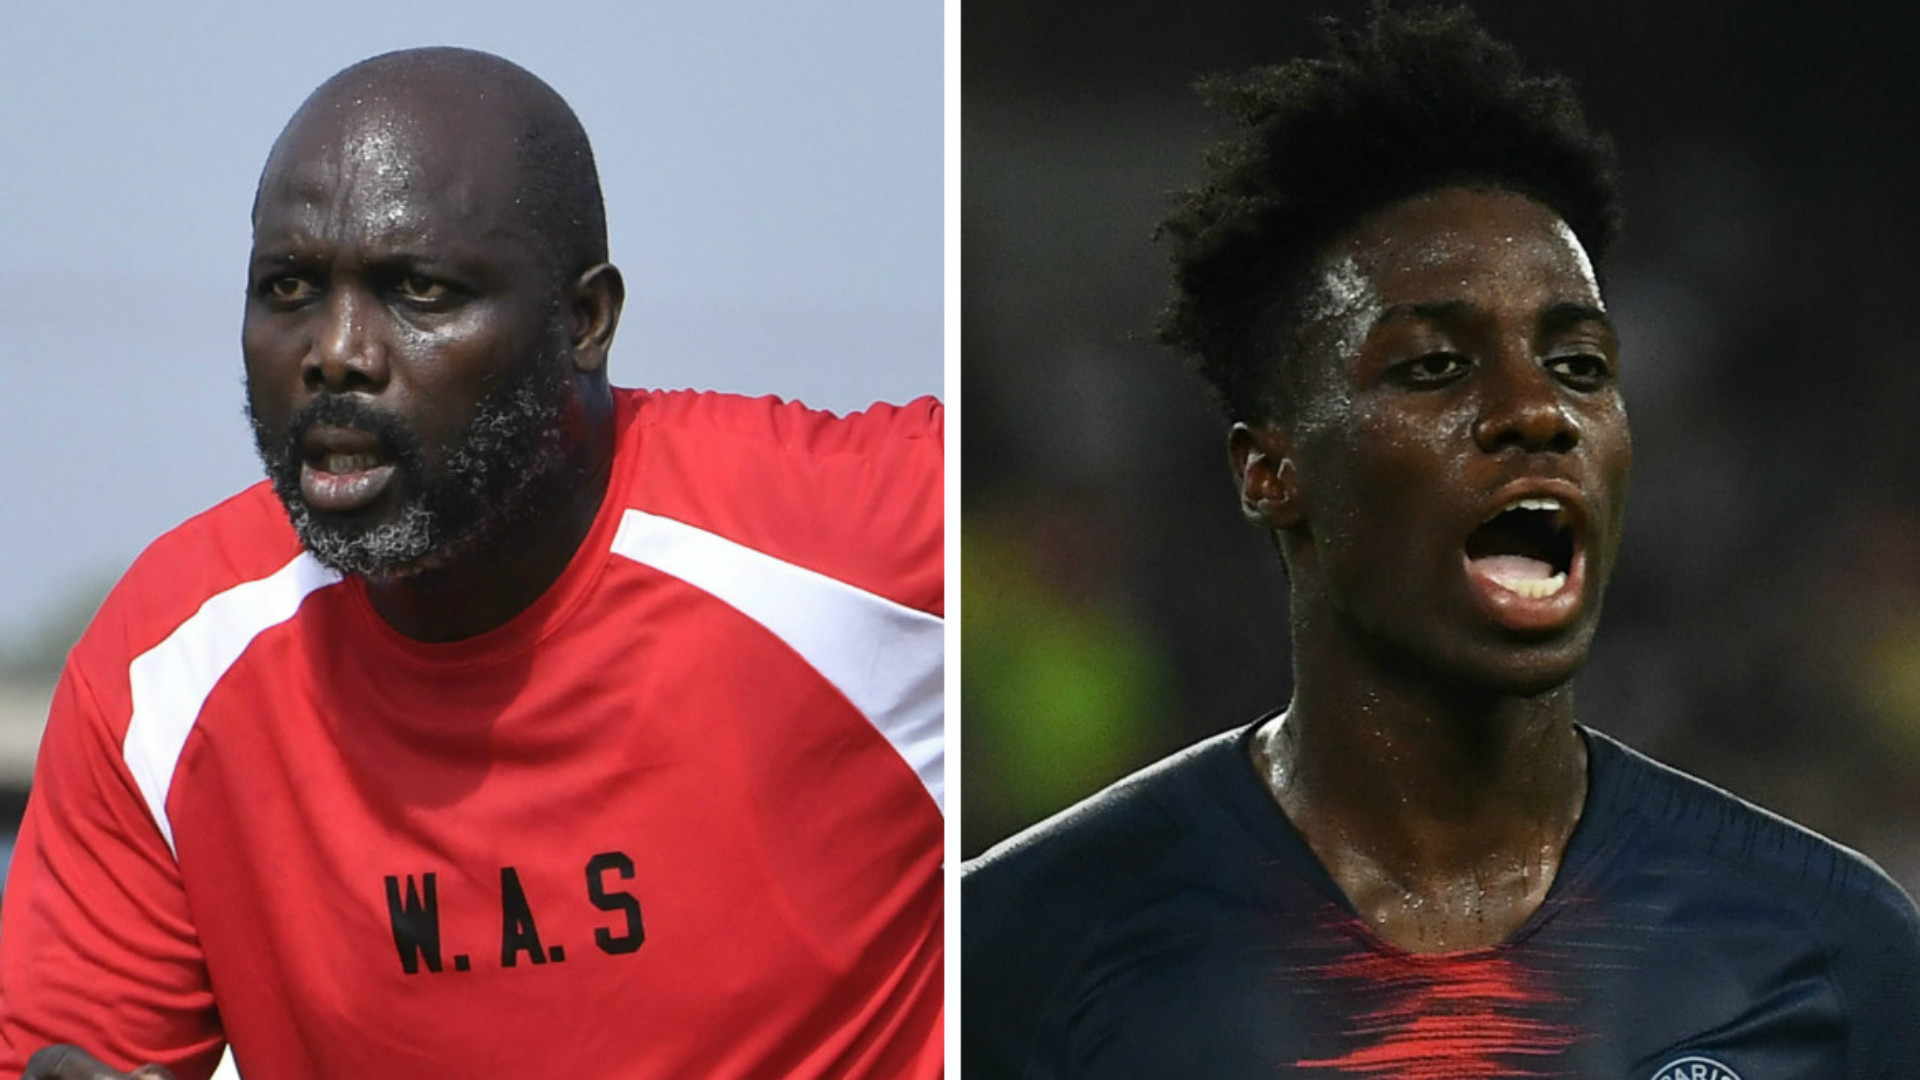 Liberia president George Weah makes comeback for national team, aged 51